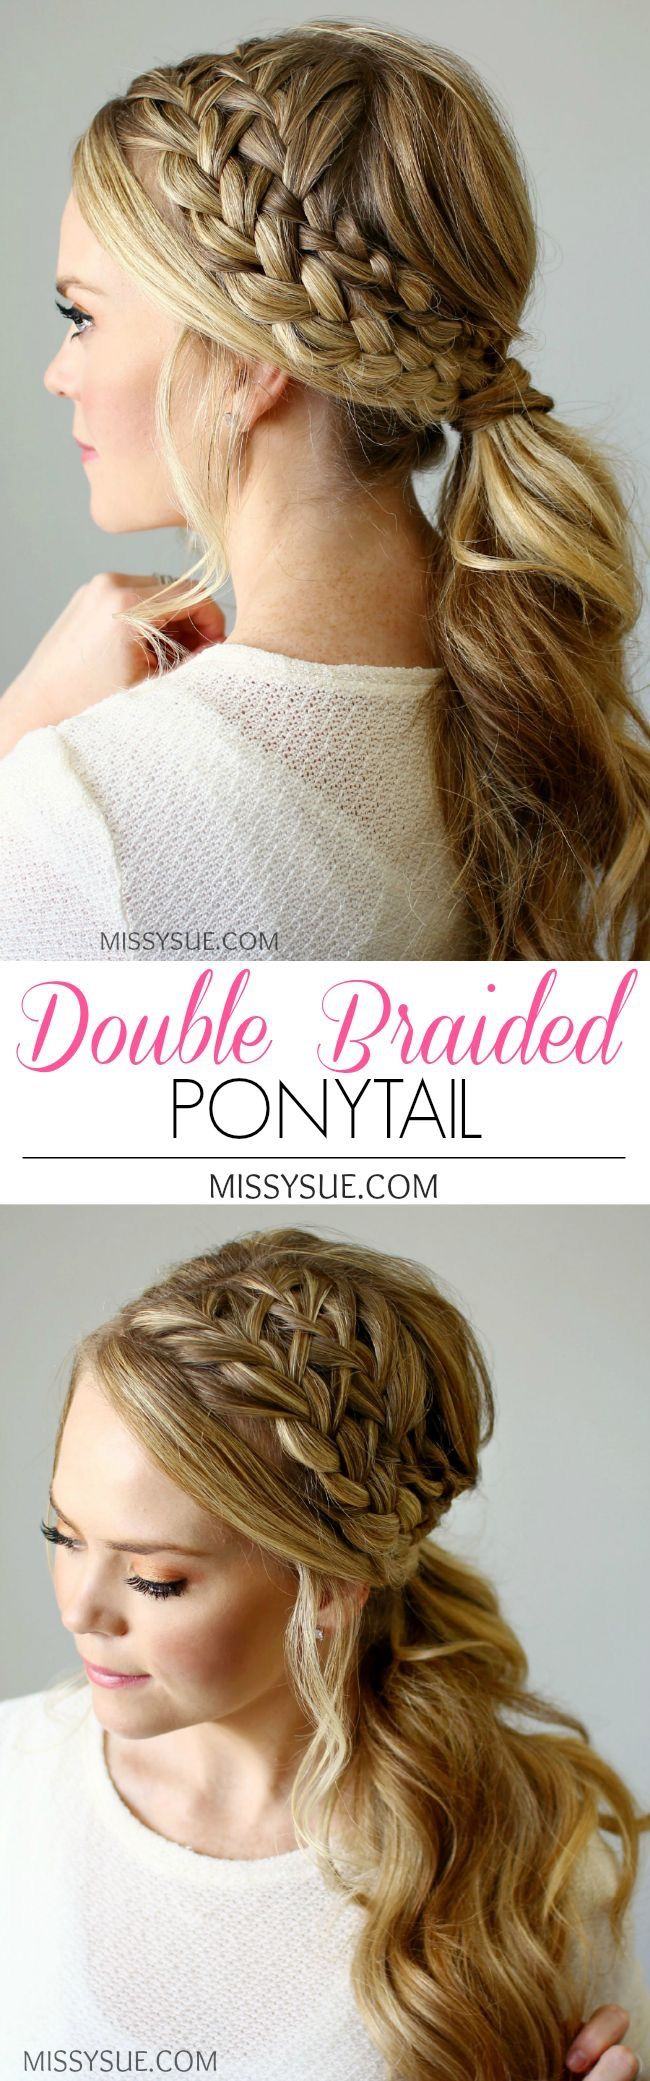 Double braided ponytail updos pinterest ponytail hair style